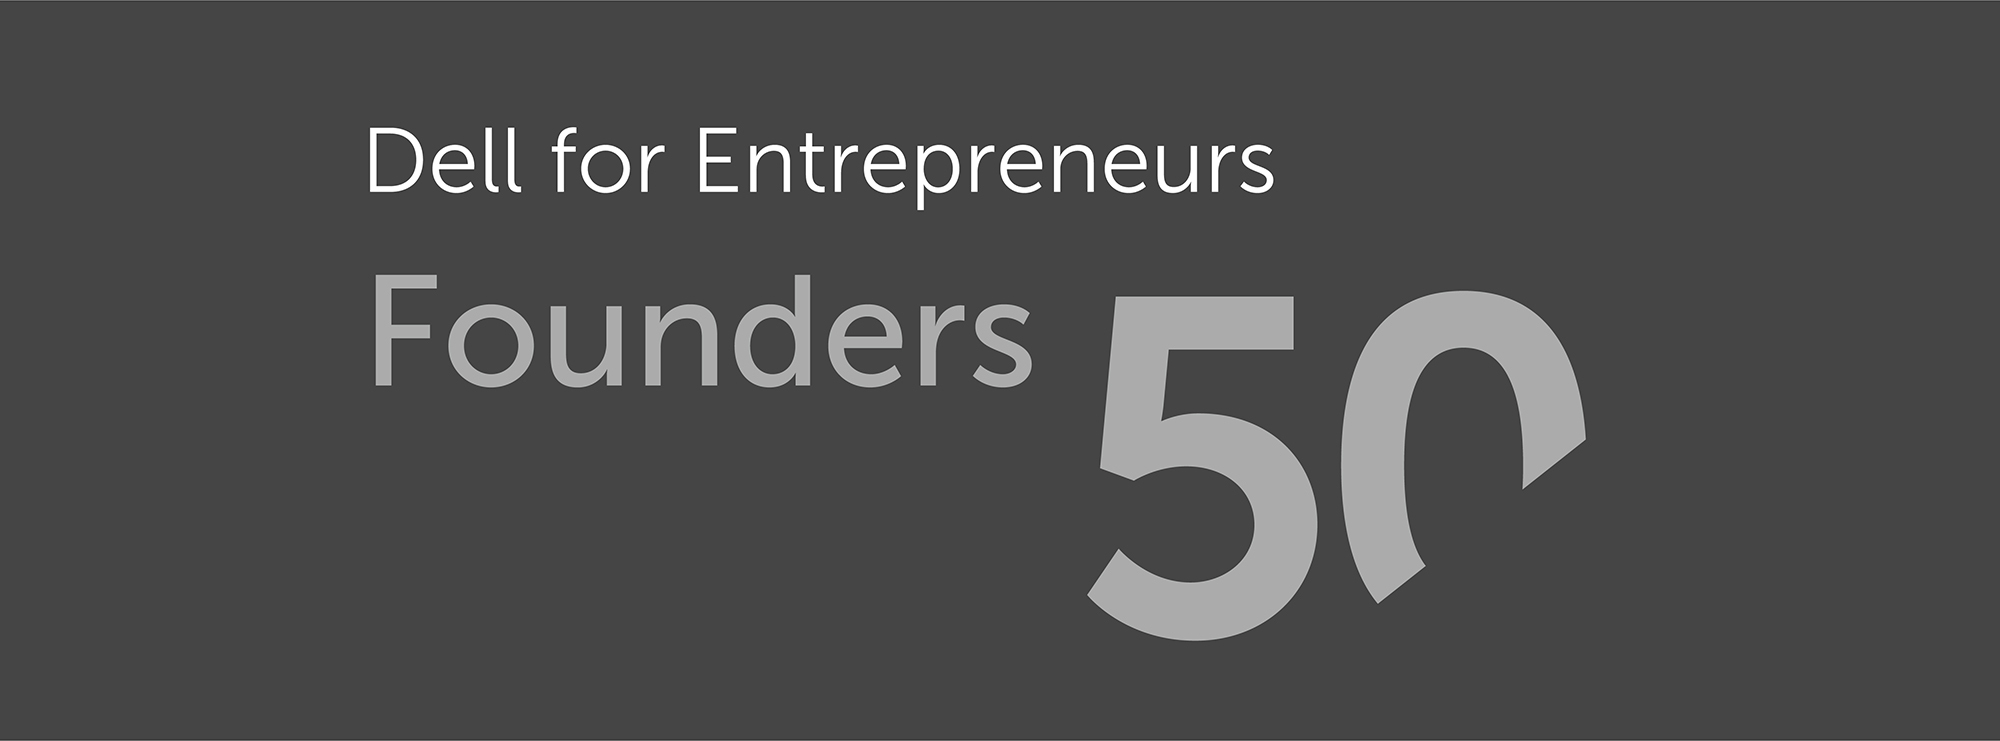 Dell Founders 50 Spotlights Startups Using Innovative Solutions to